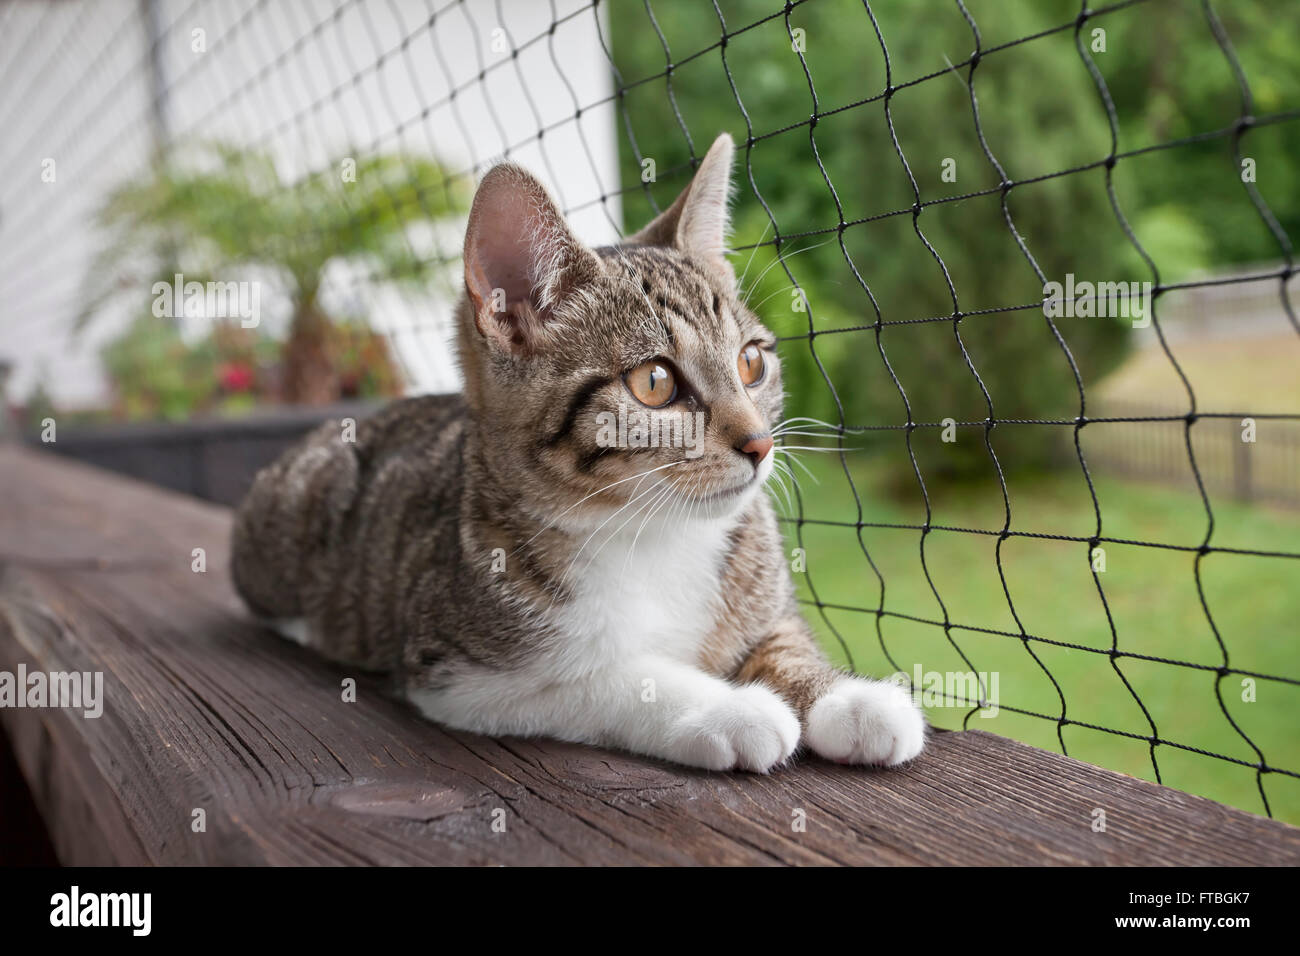 Domestic Cat is lying on a balcony in front of a net - Stock Image